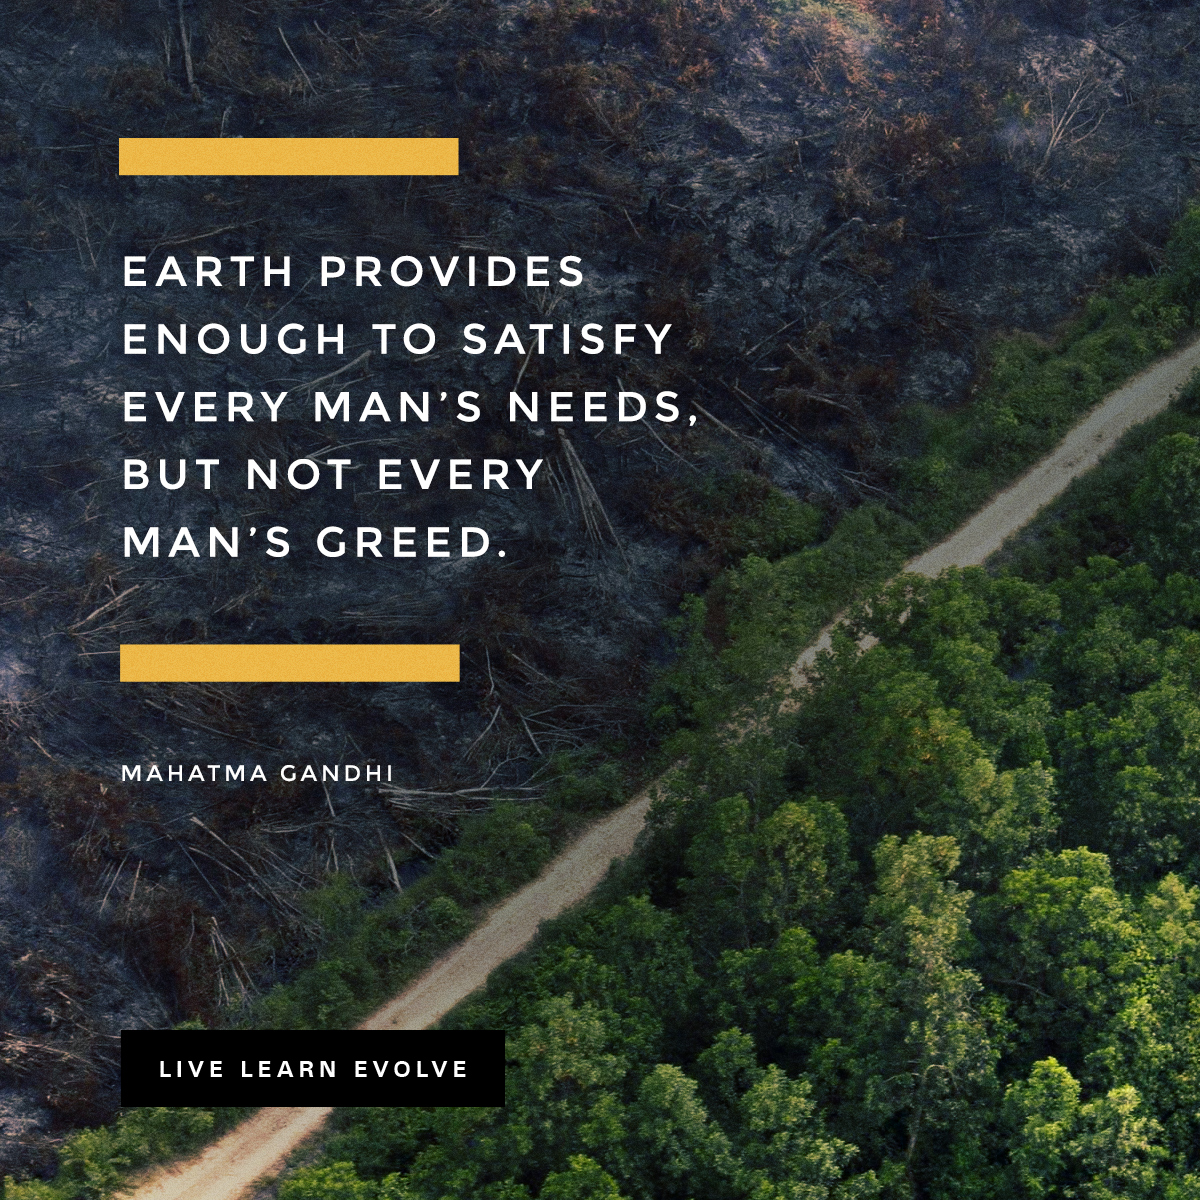 mahatma_gandhi_earth_greed_need_man